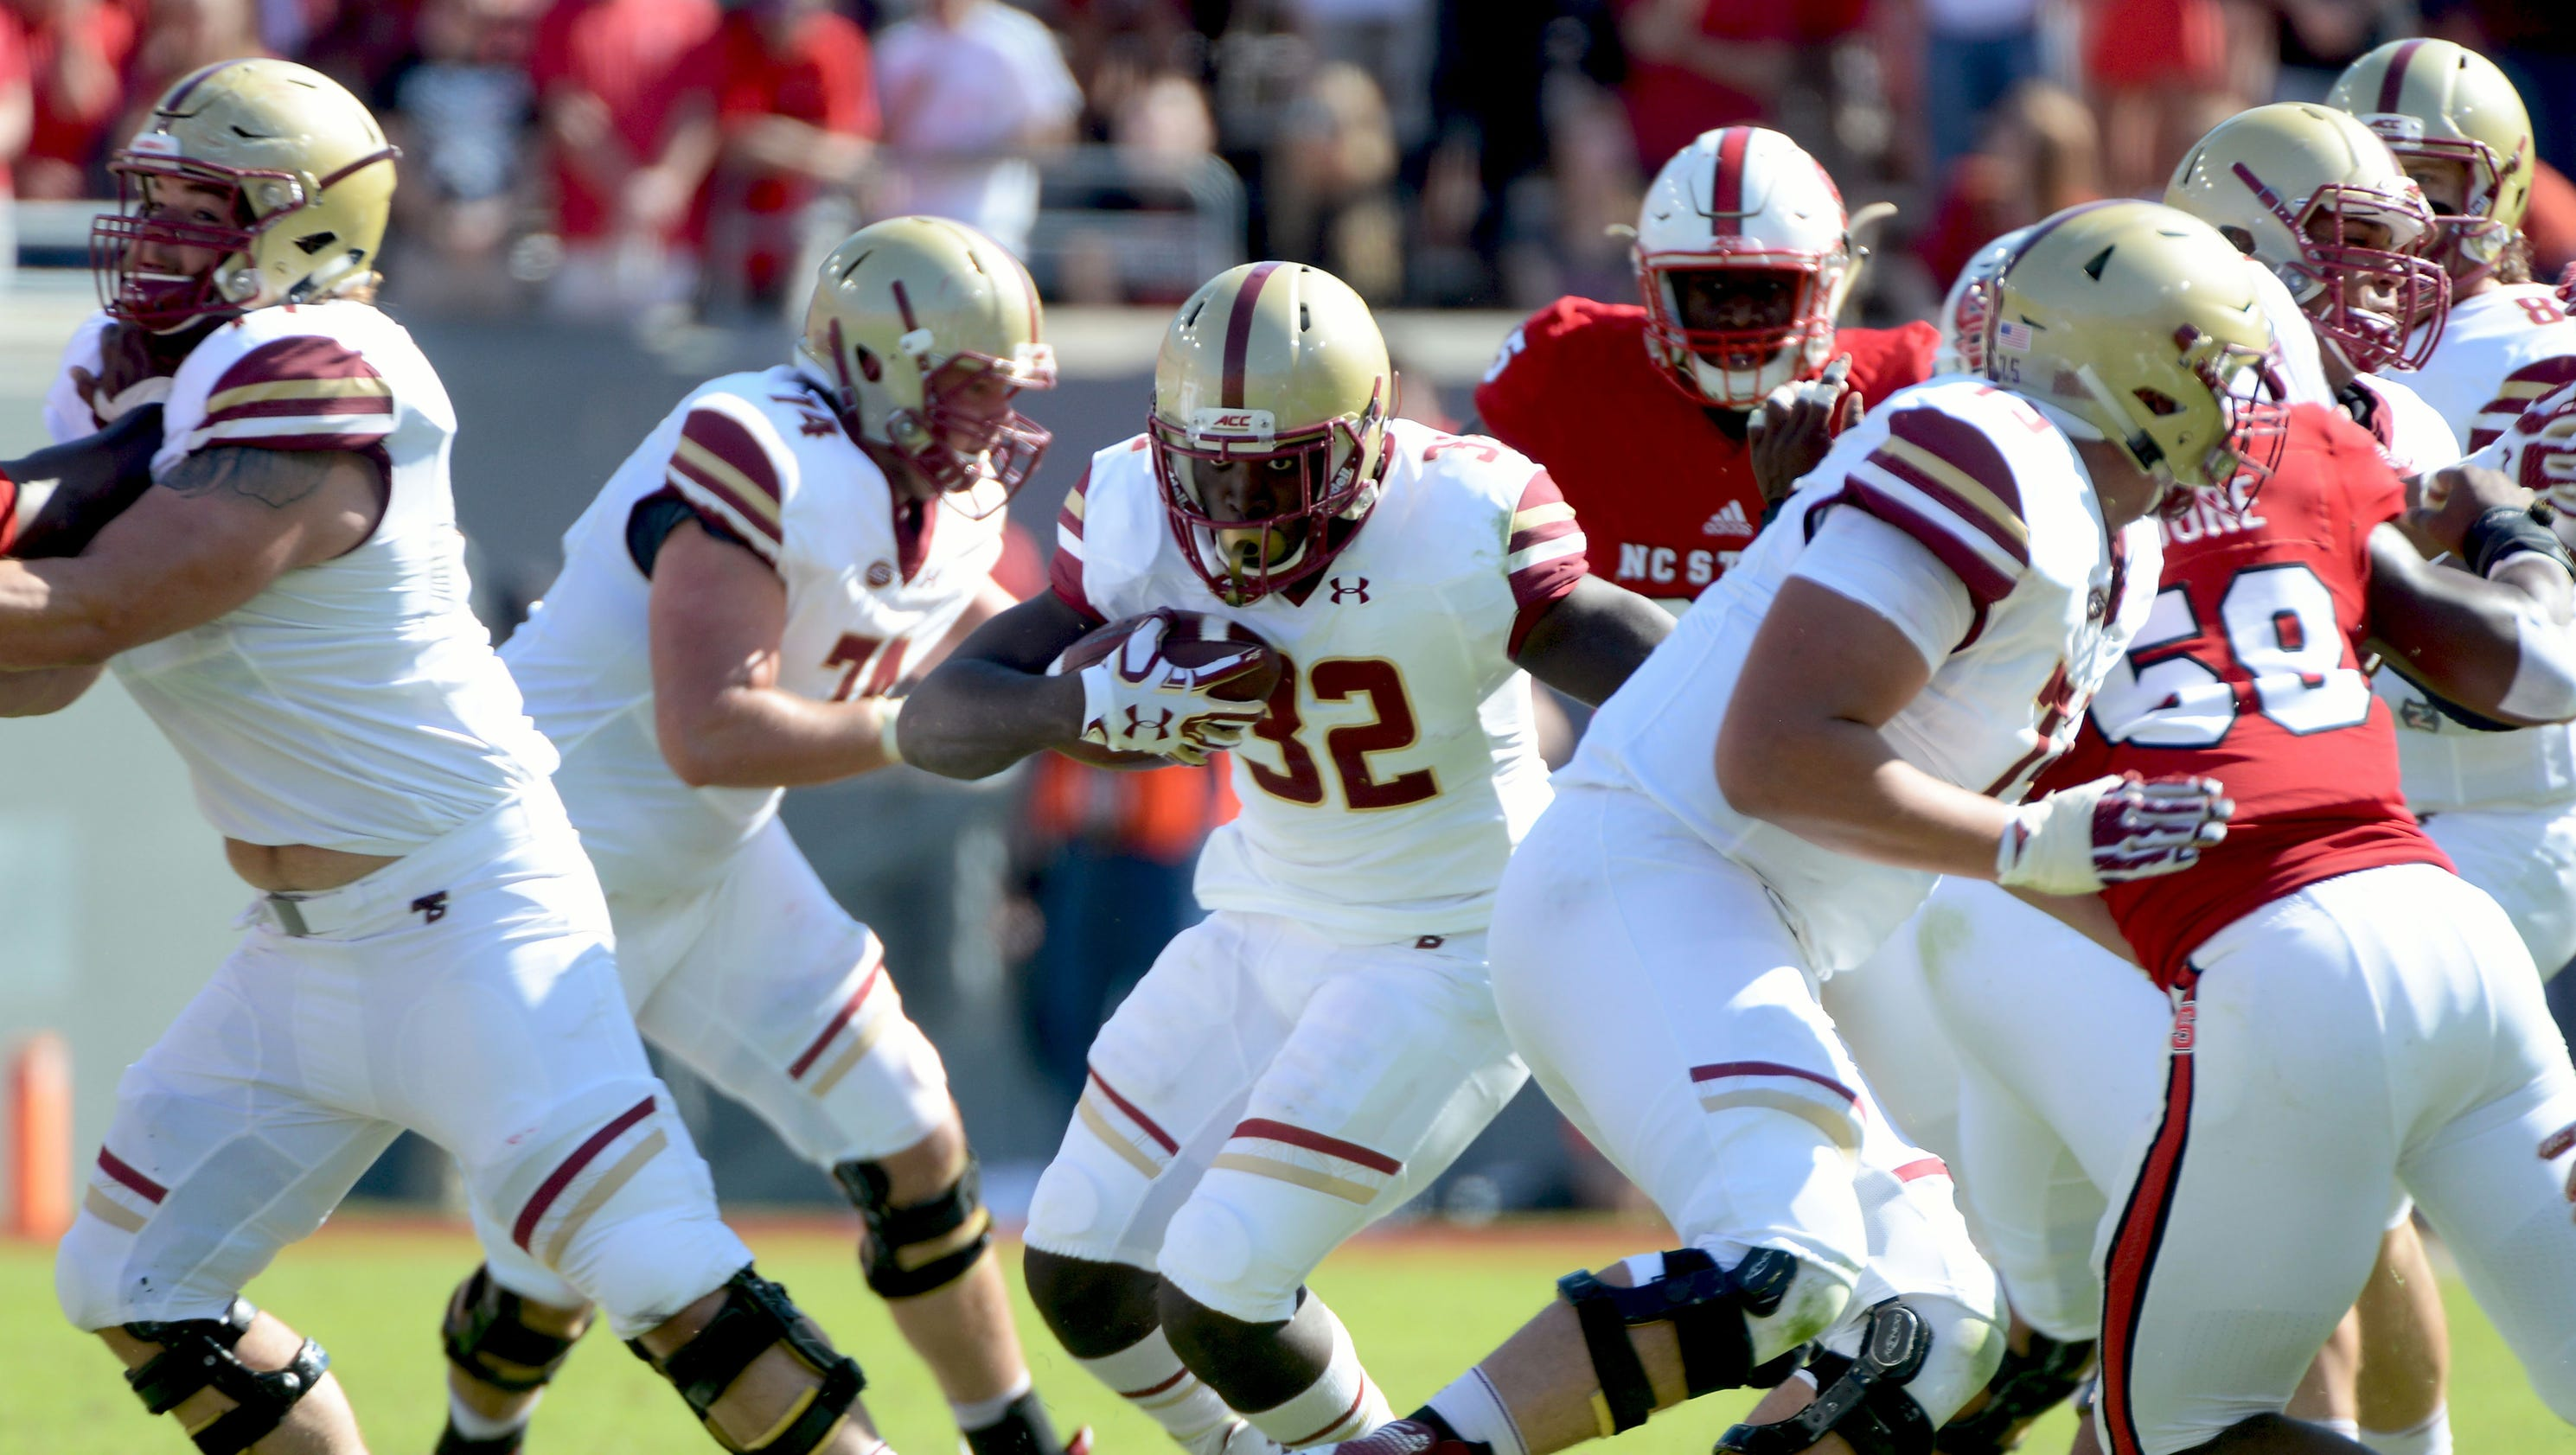 acc football scores for today thanksgiving college football games